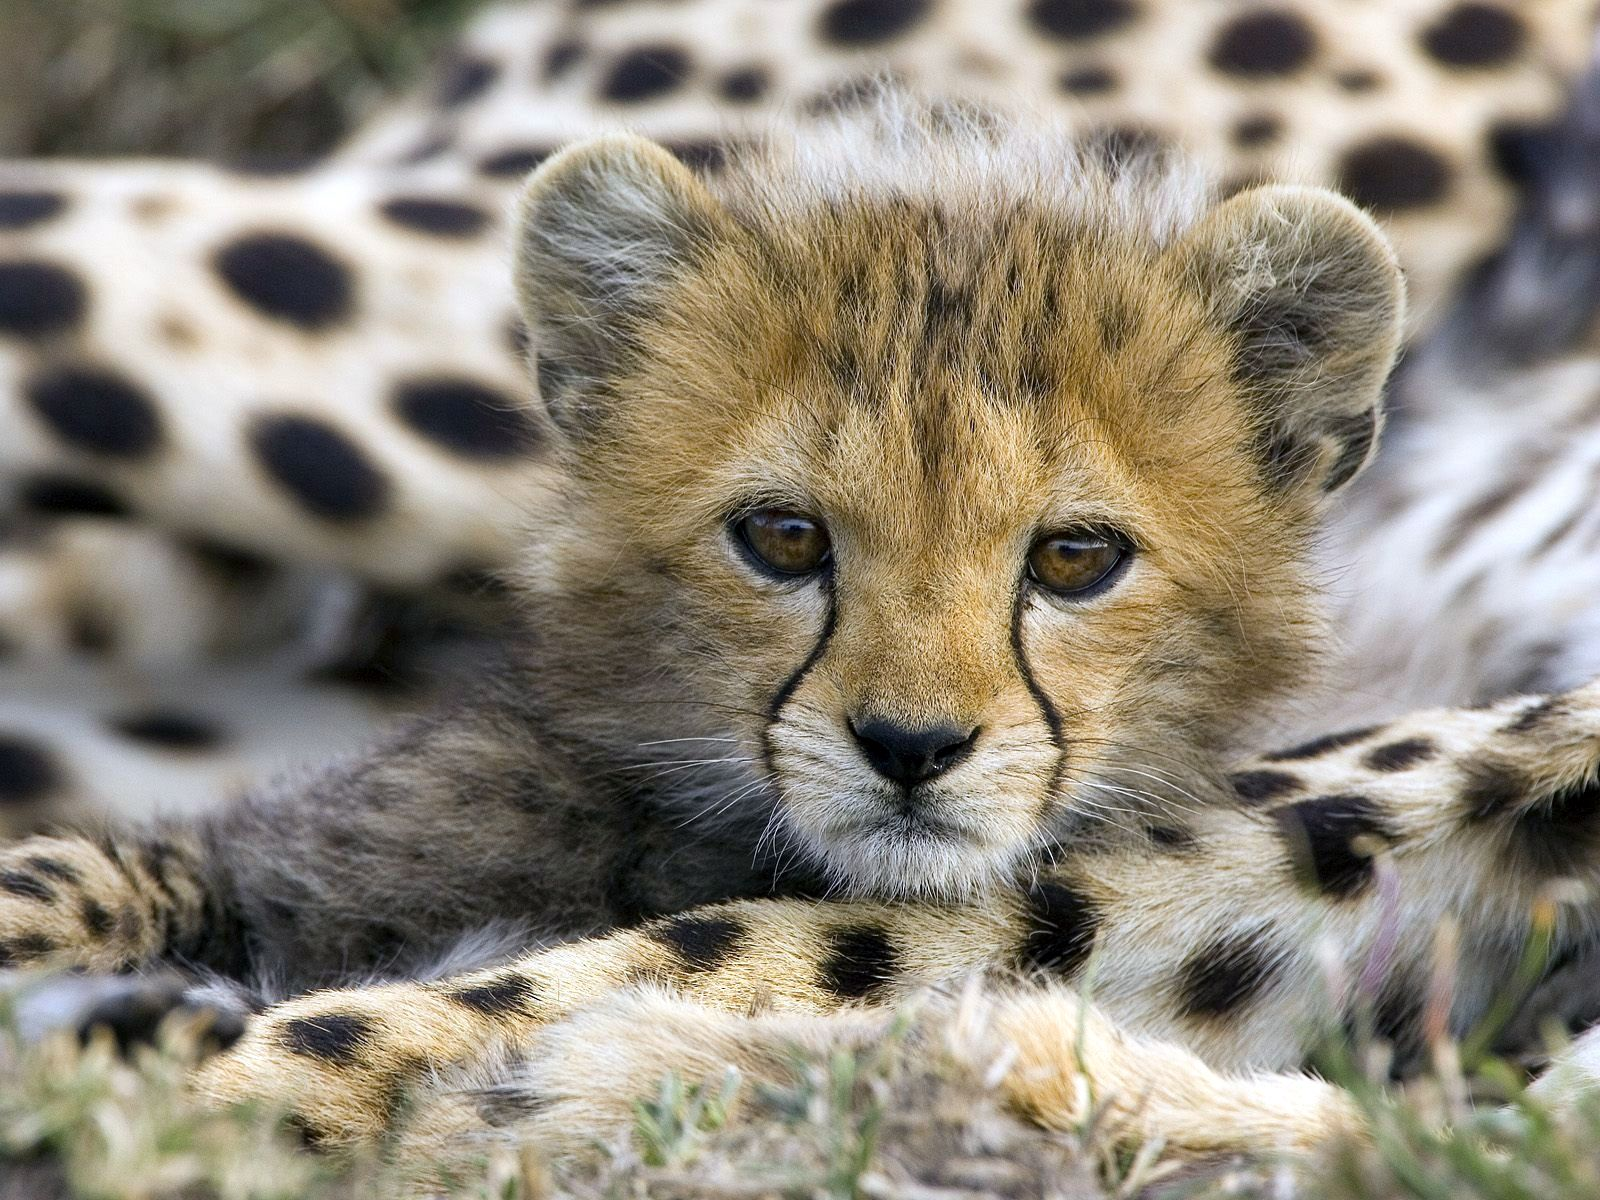 Image Detail For Cute Baby Animals Cute Baby Animal Pictures Pictures Of Cute Baby Cute Baby Animals Animals Wild Cats